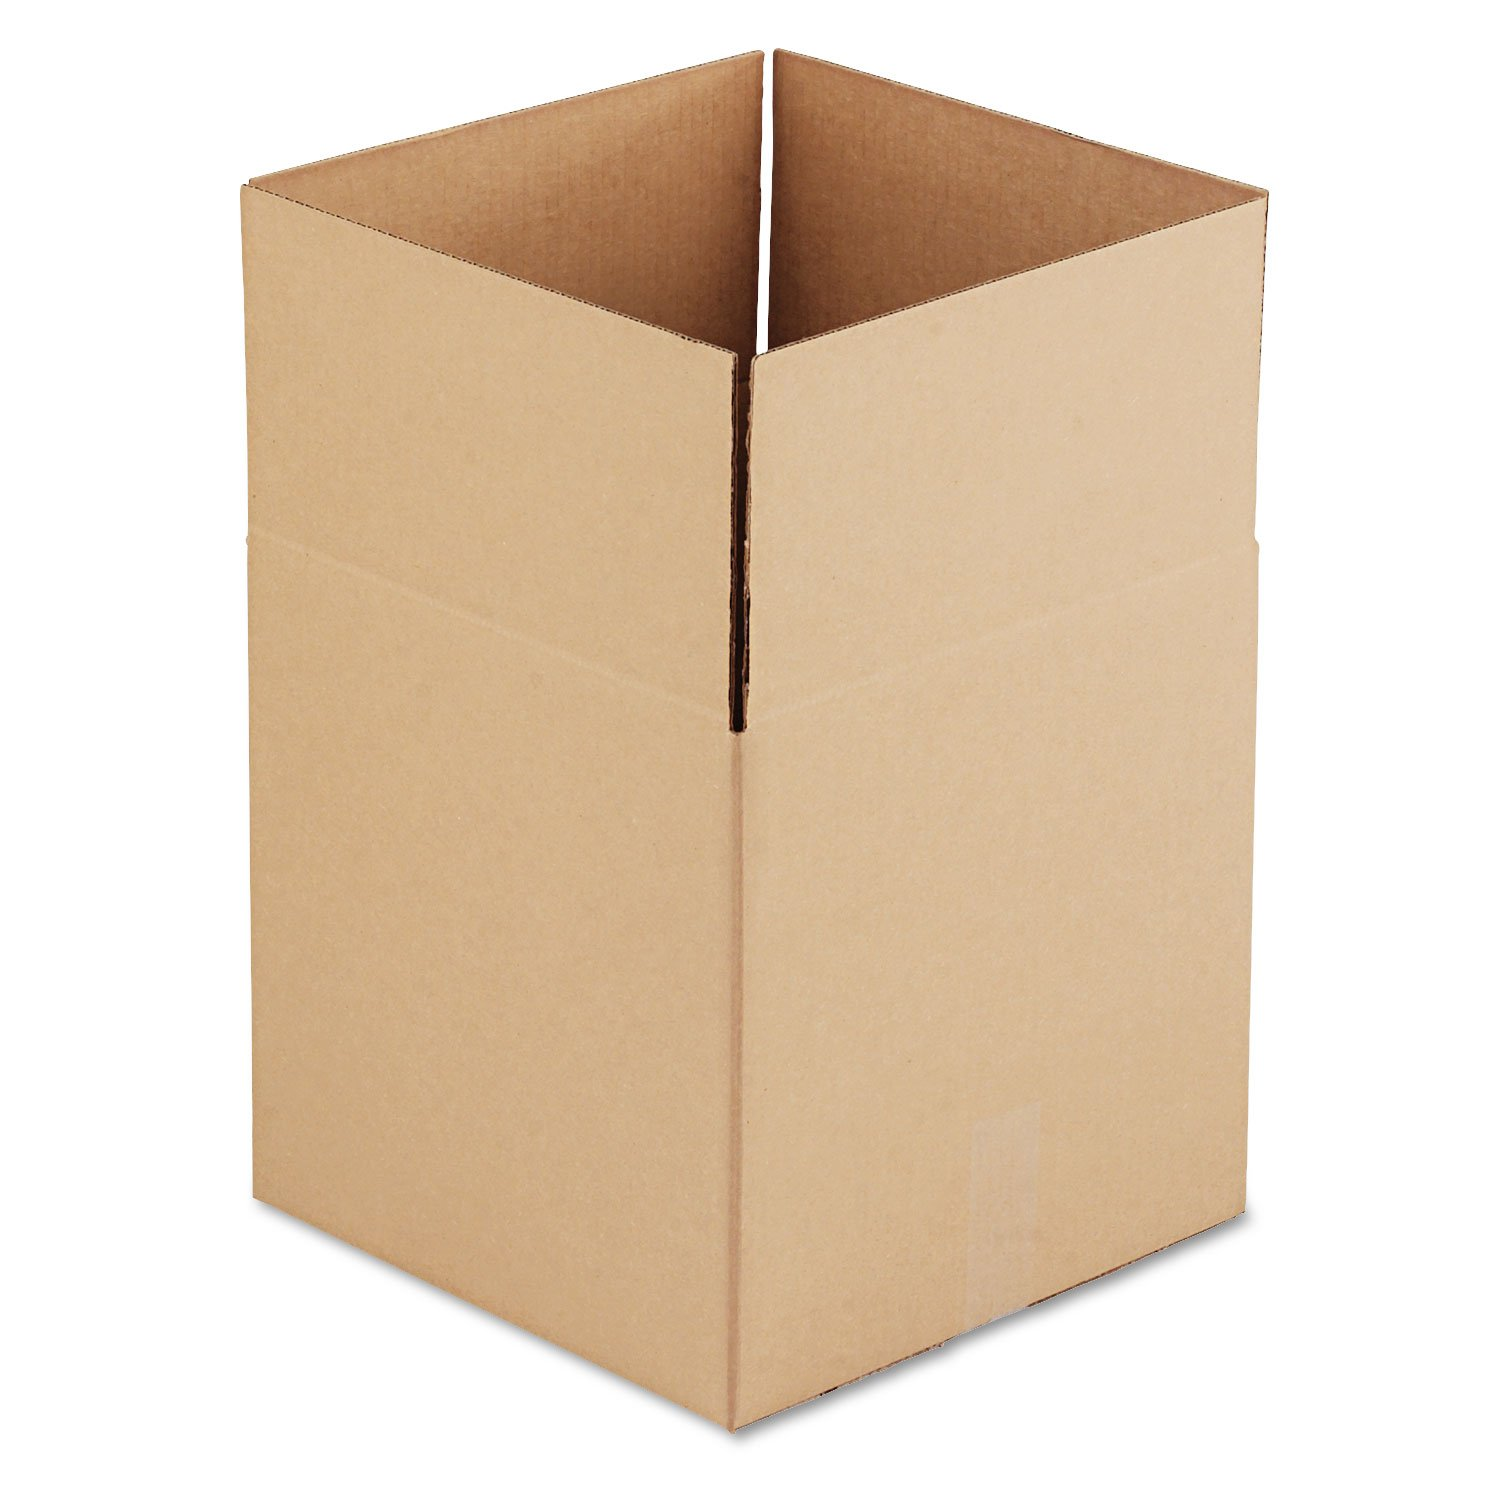 General Supply 141414 Brown Corrugated - Cubed Fixed-Depth Shipping Boxes, 14Lx 14Wx14H, 25/Bundle by Miller Supply Inc (Image #1)